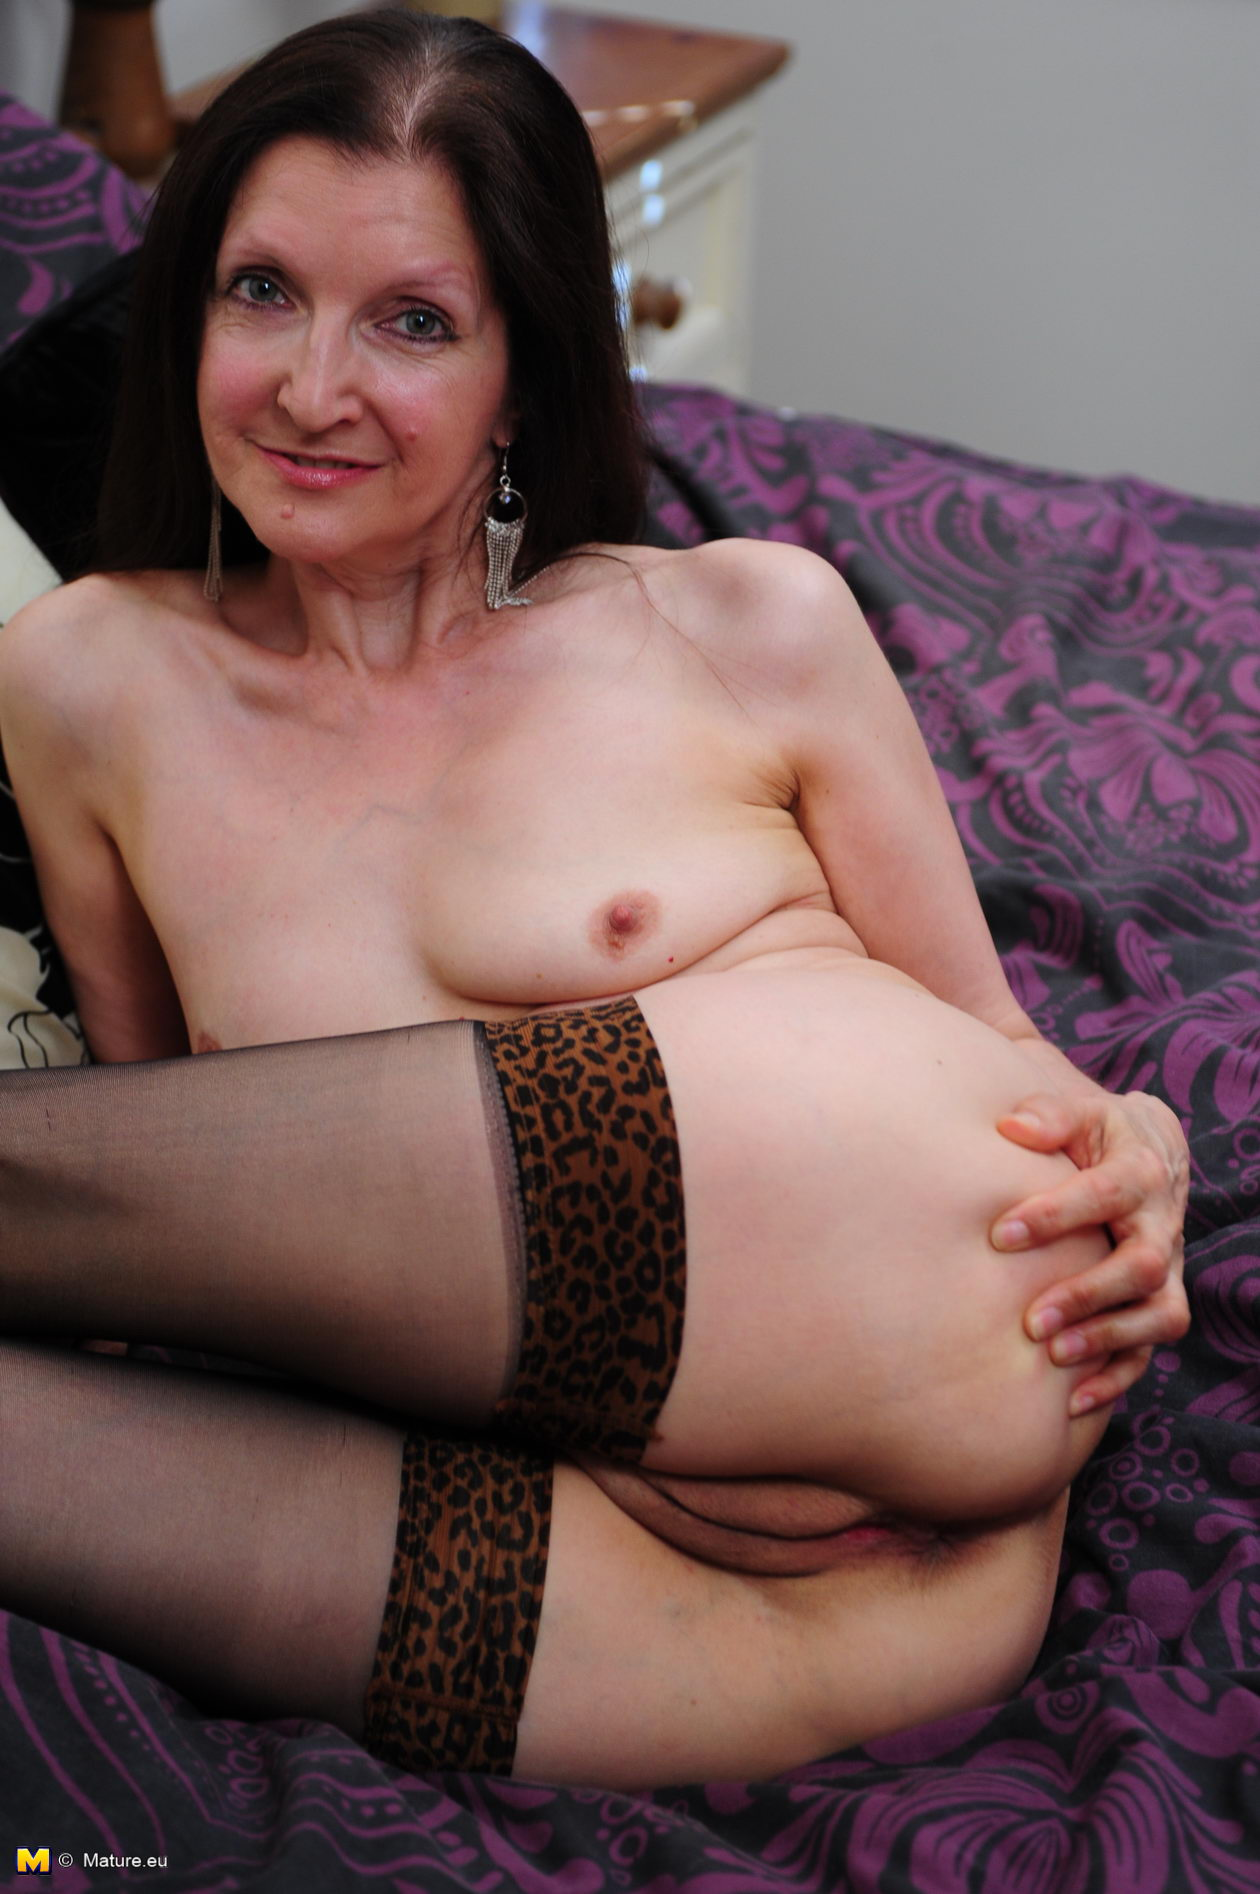 Ugly mom with flabby body amp tits amp guy 3